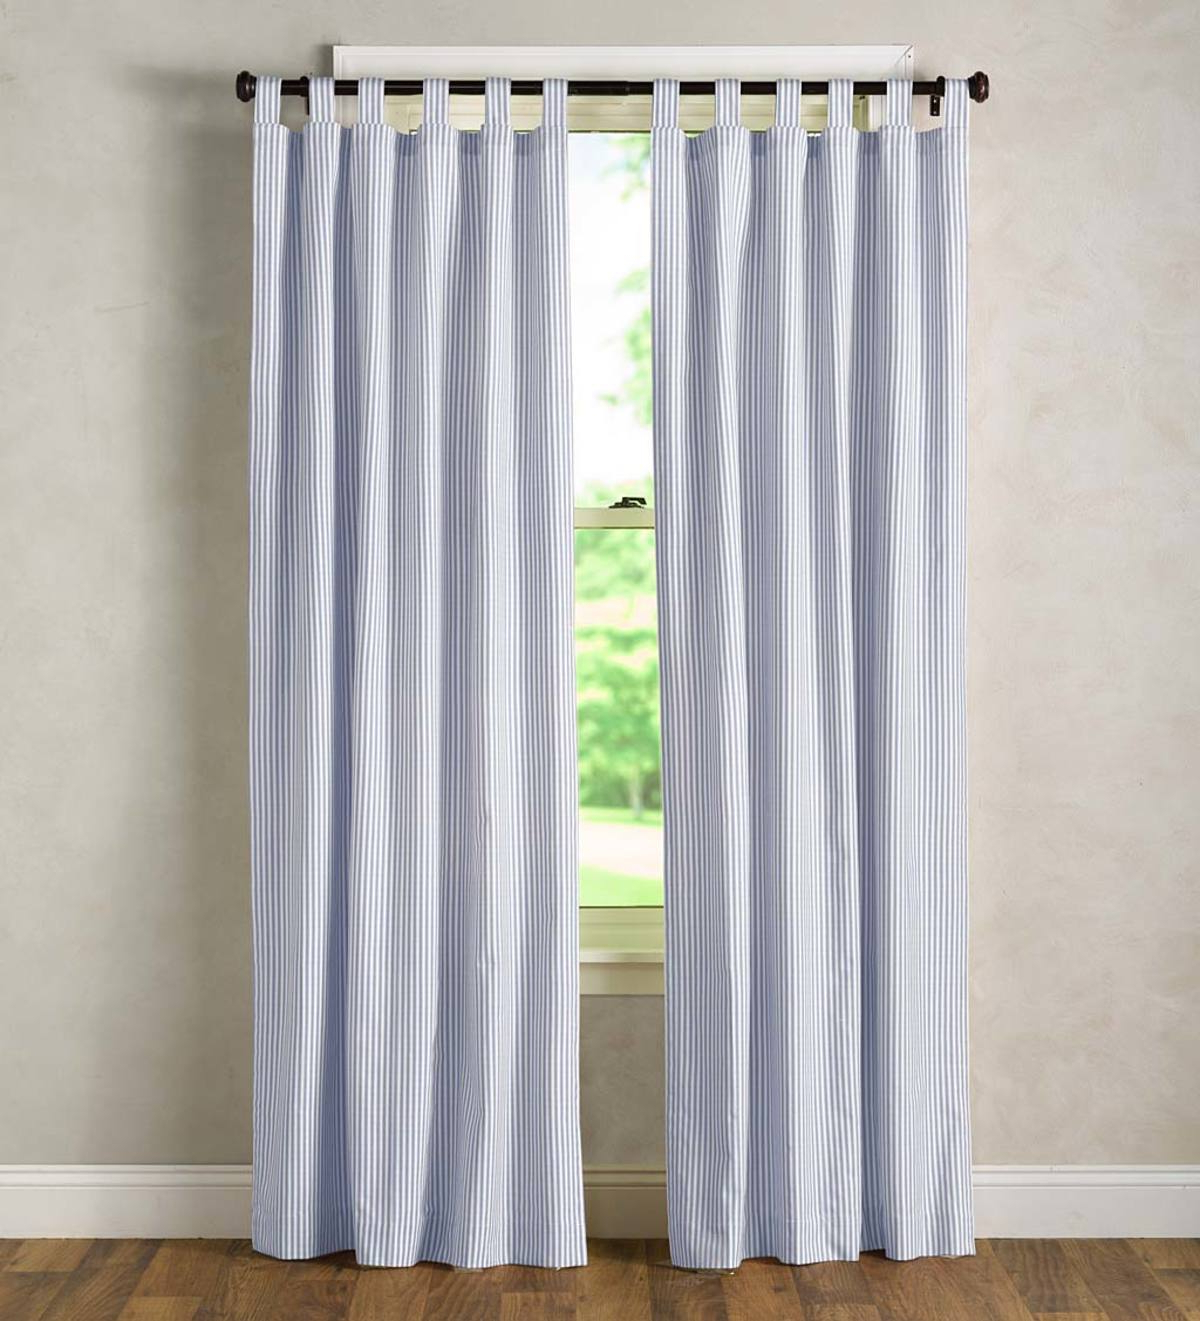 Well Liked Insulated Cotton Curtain Panel Pairs Inside Thermalogic Insulated Ticking Stripe Tab Top Curtain Pairs (View 14 of 20)